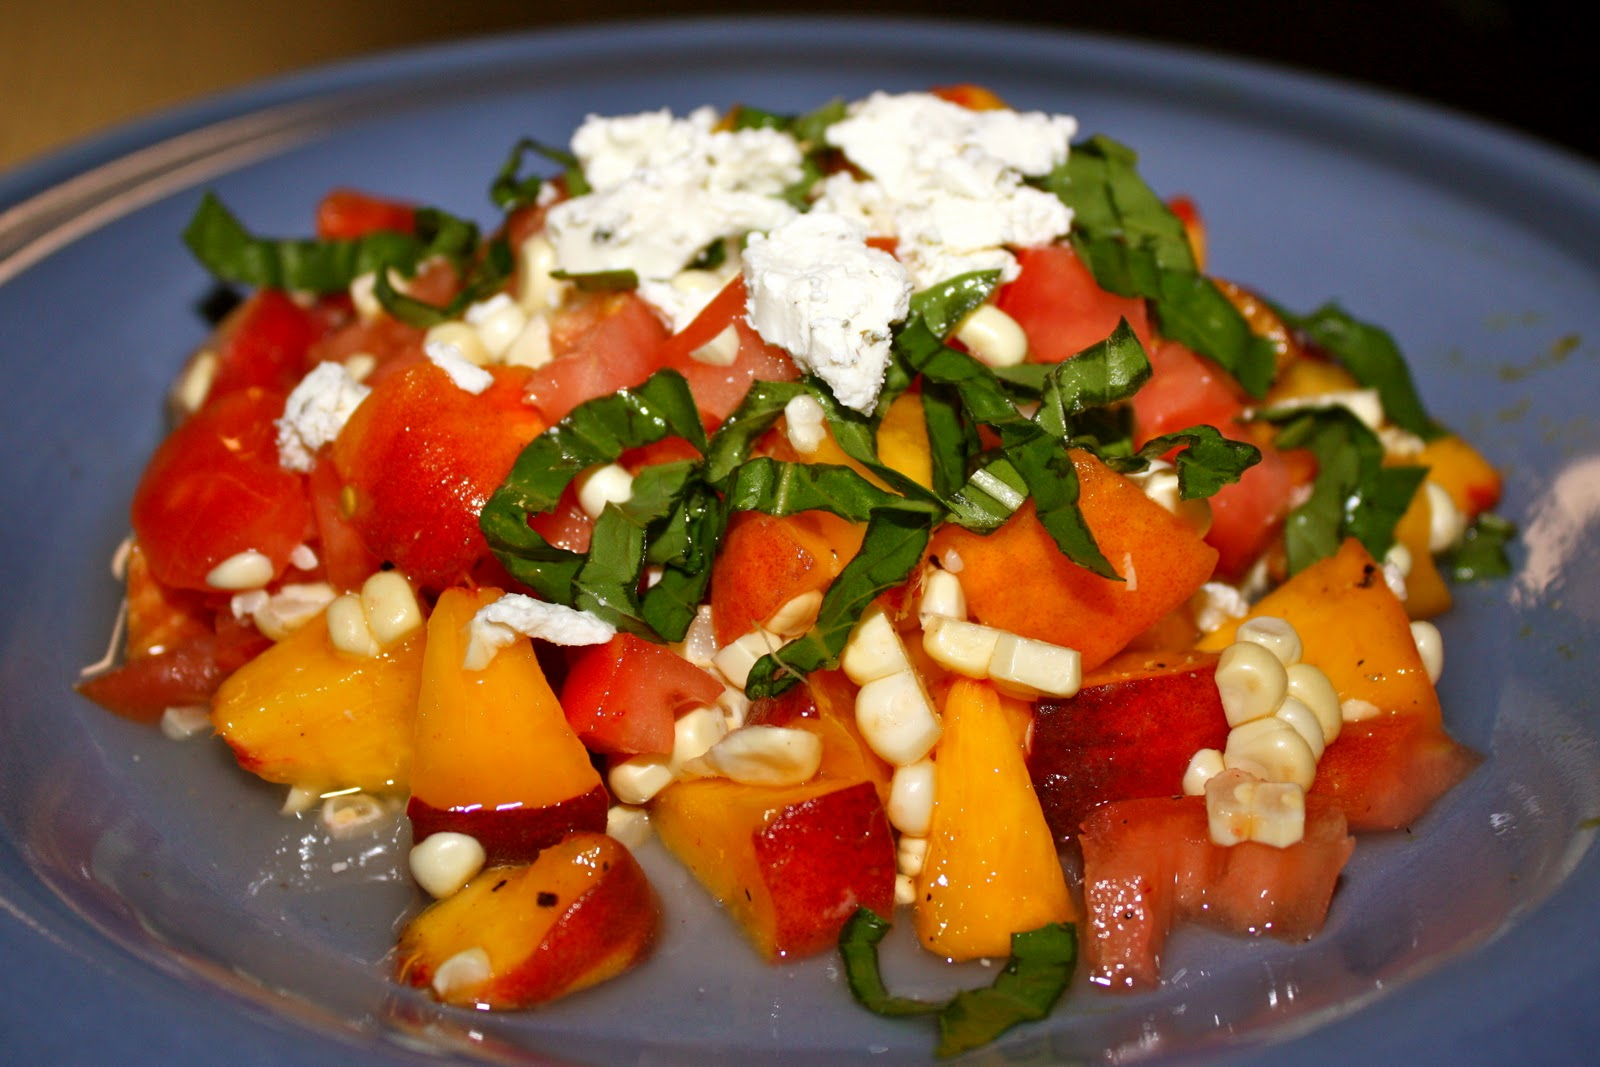 ... girl in dc: Summer Sweet Corn, Peach & Tomato Salad with Goat Cheese